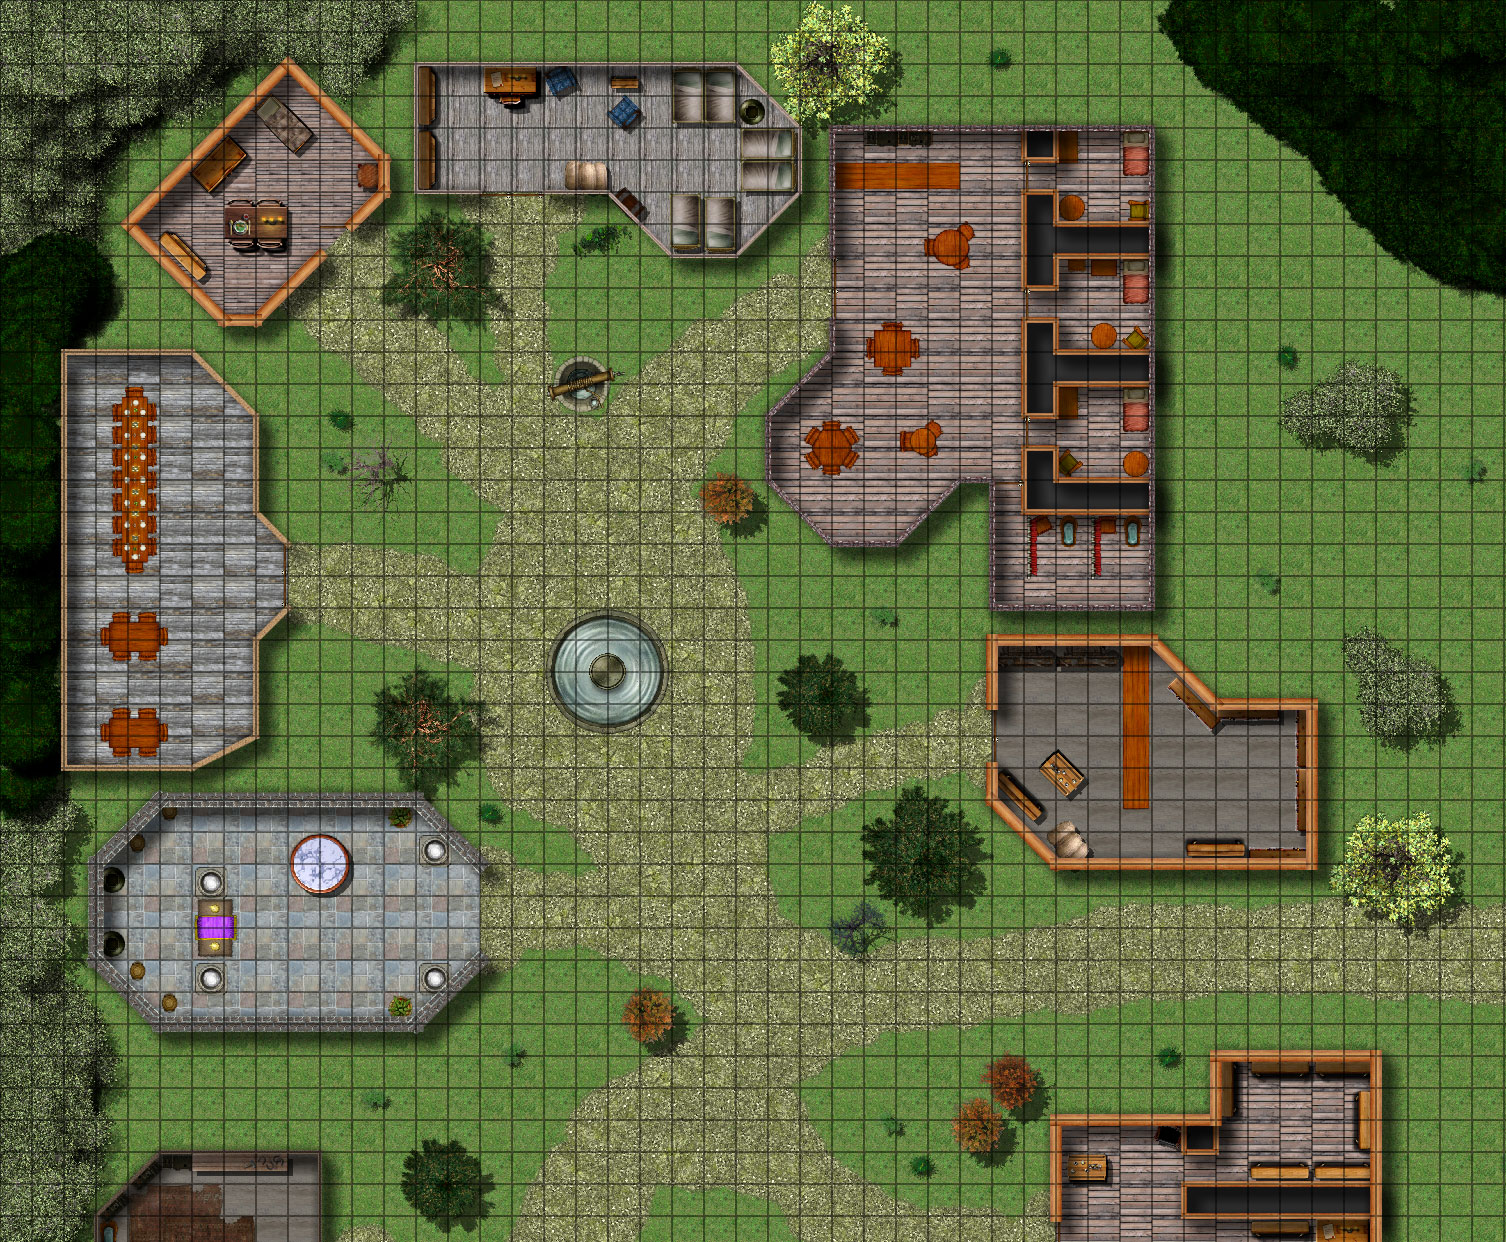 Online Home Plan Creator Dungeon Maps For Rpg Create Maps Online Download As Pdf